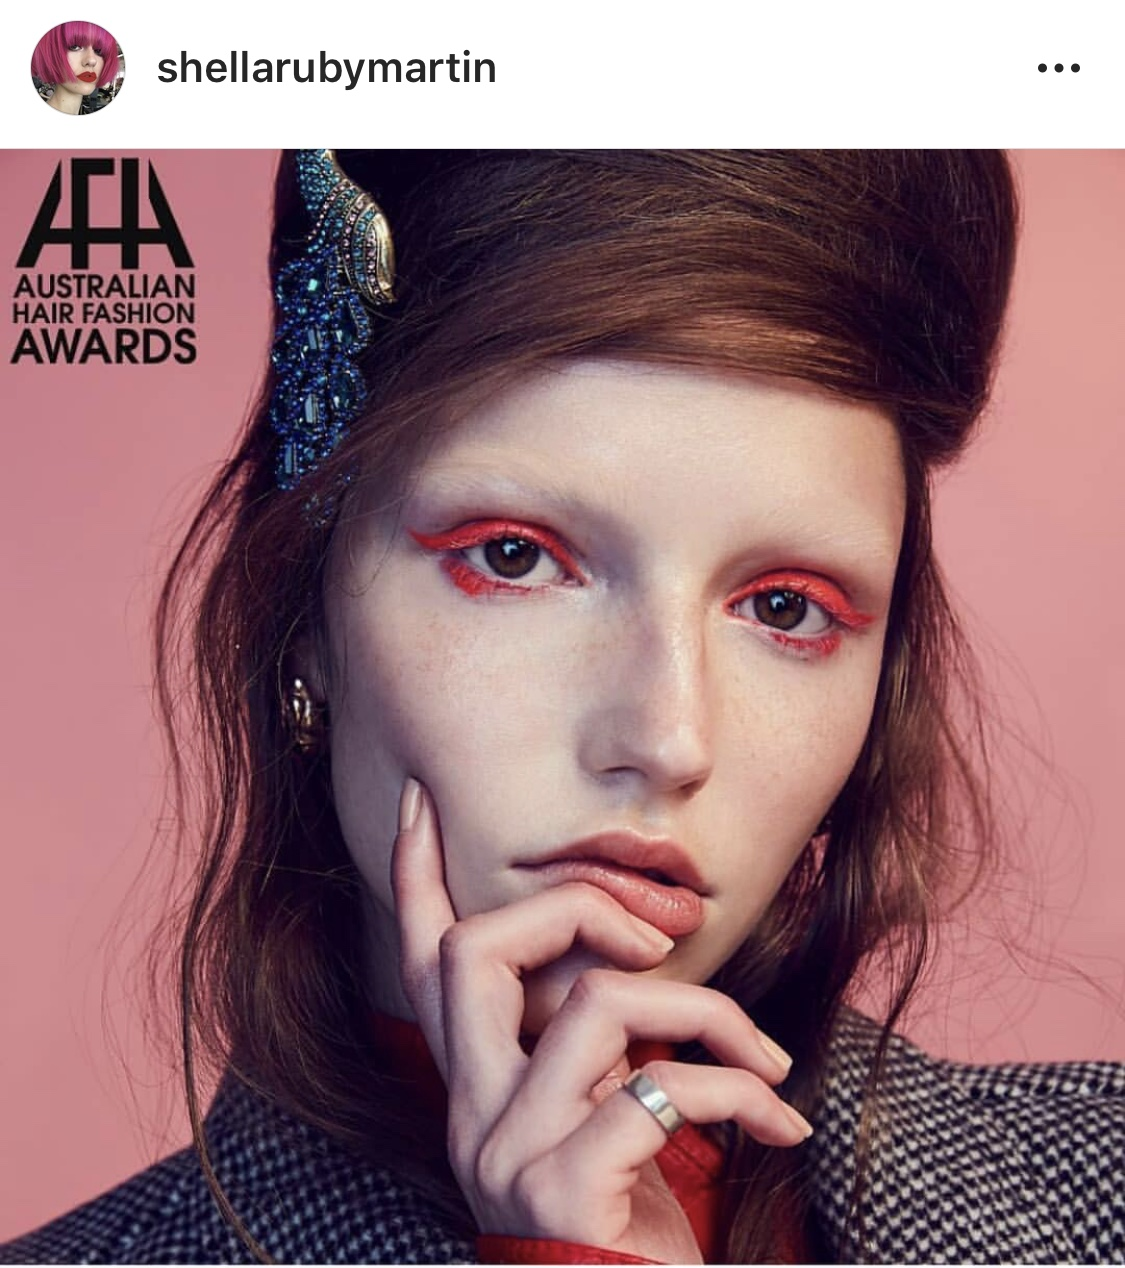 AHFA 19 FINALIST Makeup Artist of the Year